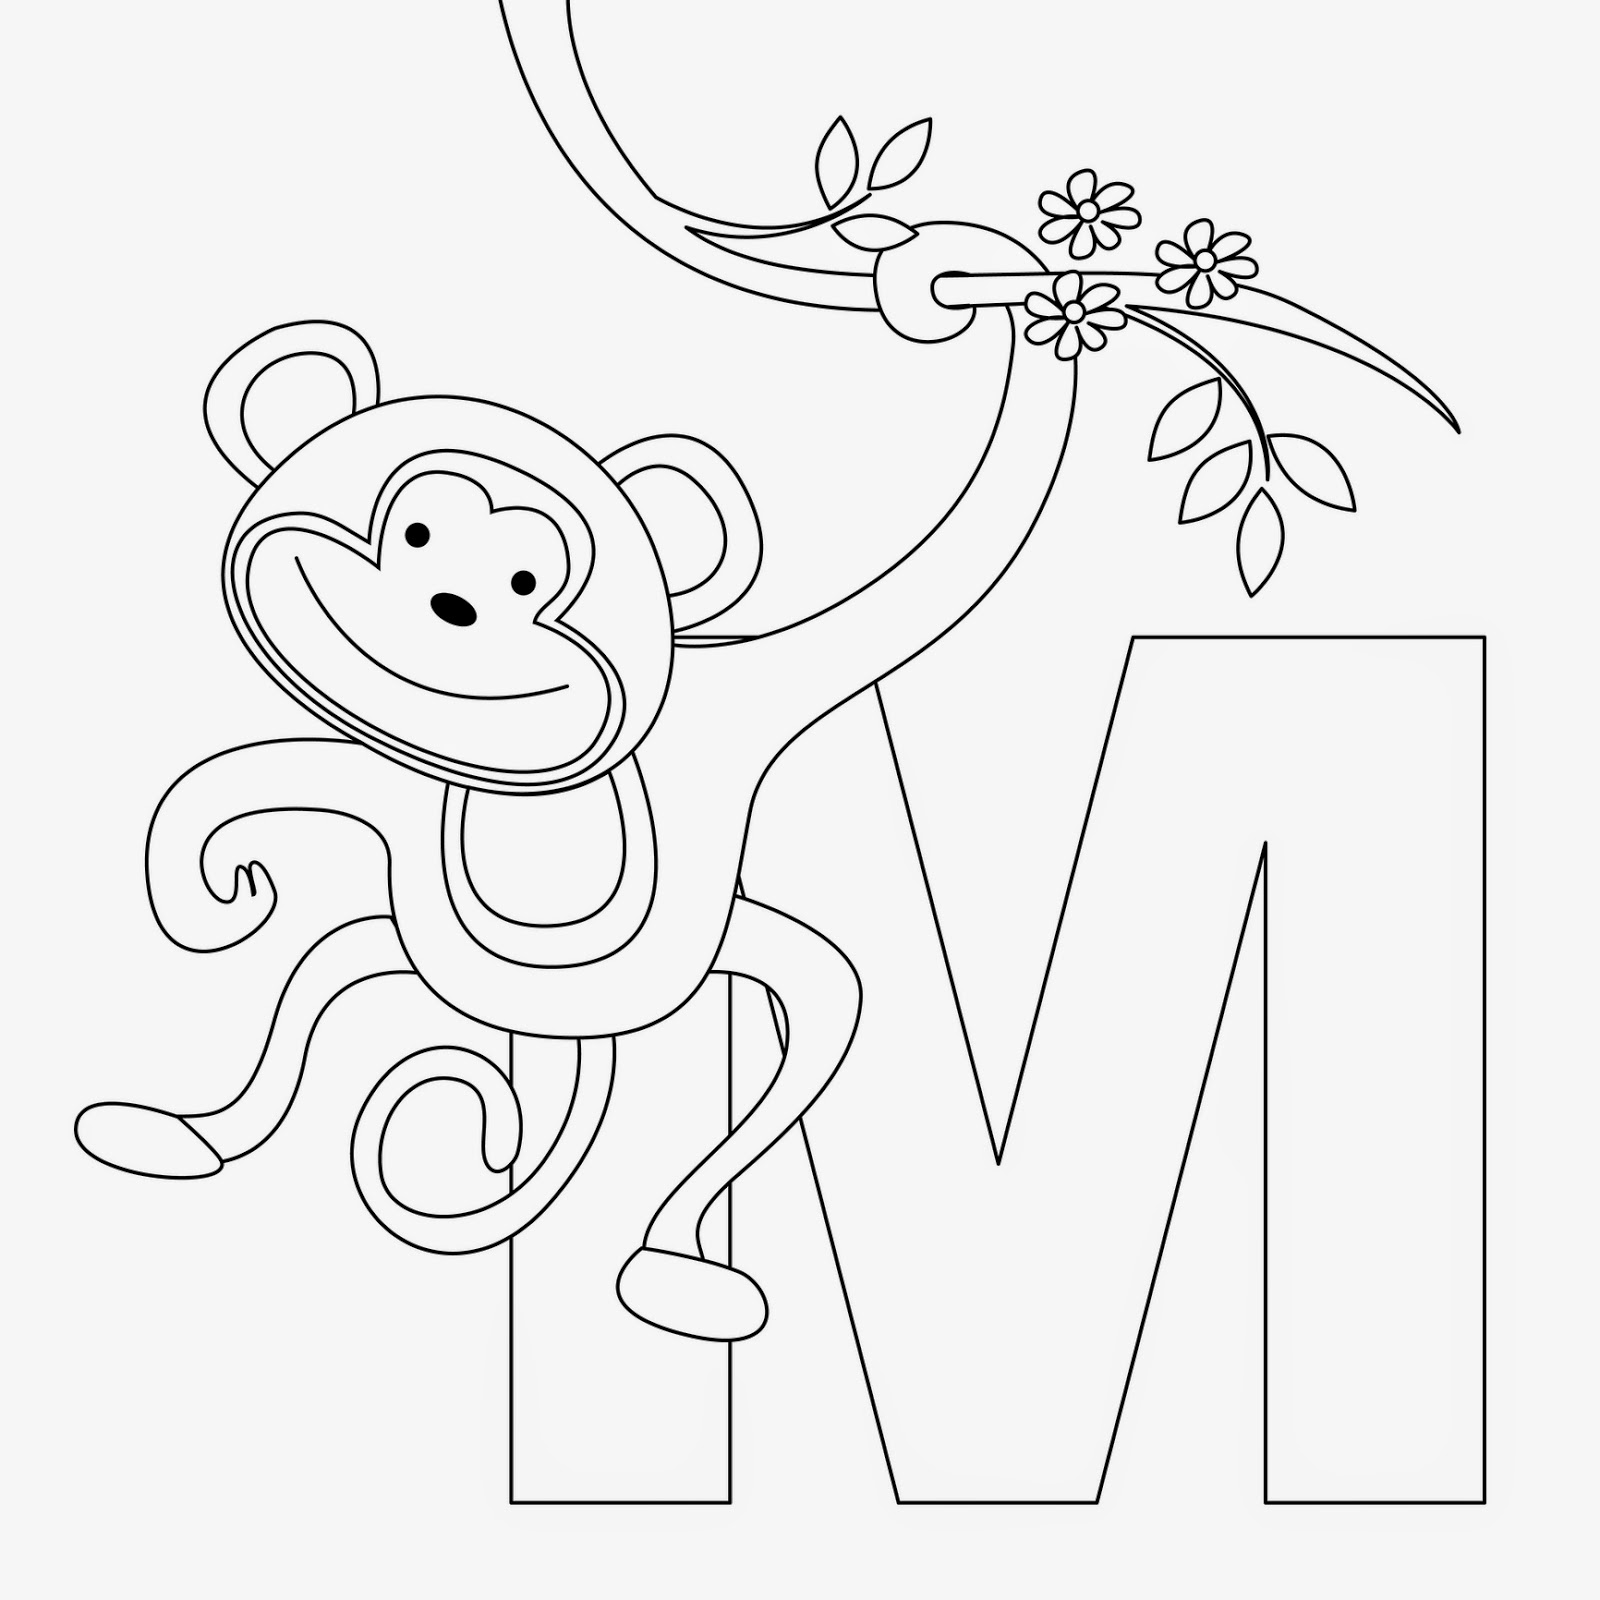 animal alphabet colouring pages alphabet letter g for preschool activities worksheetsfree alphabet pages animal colouring